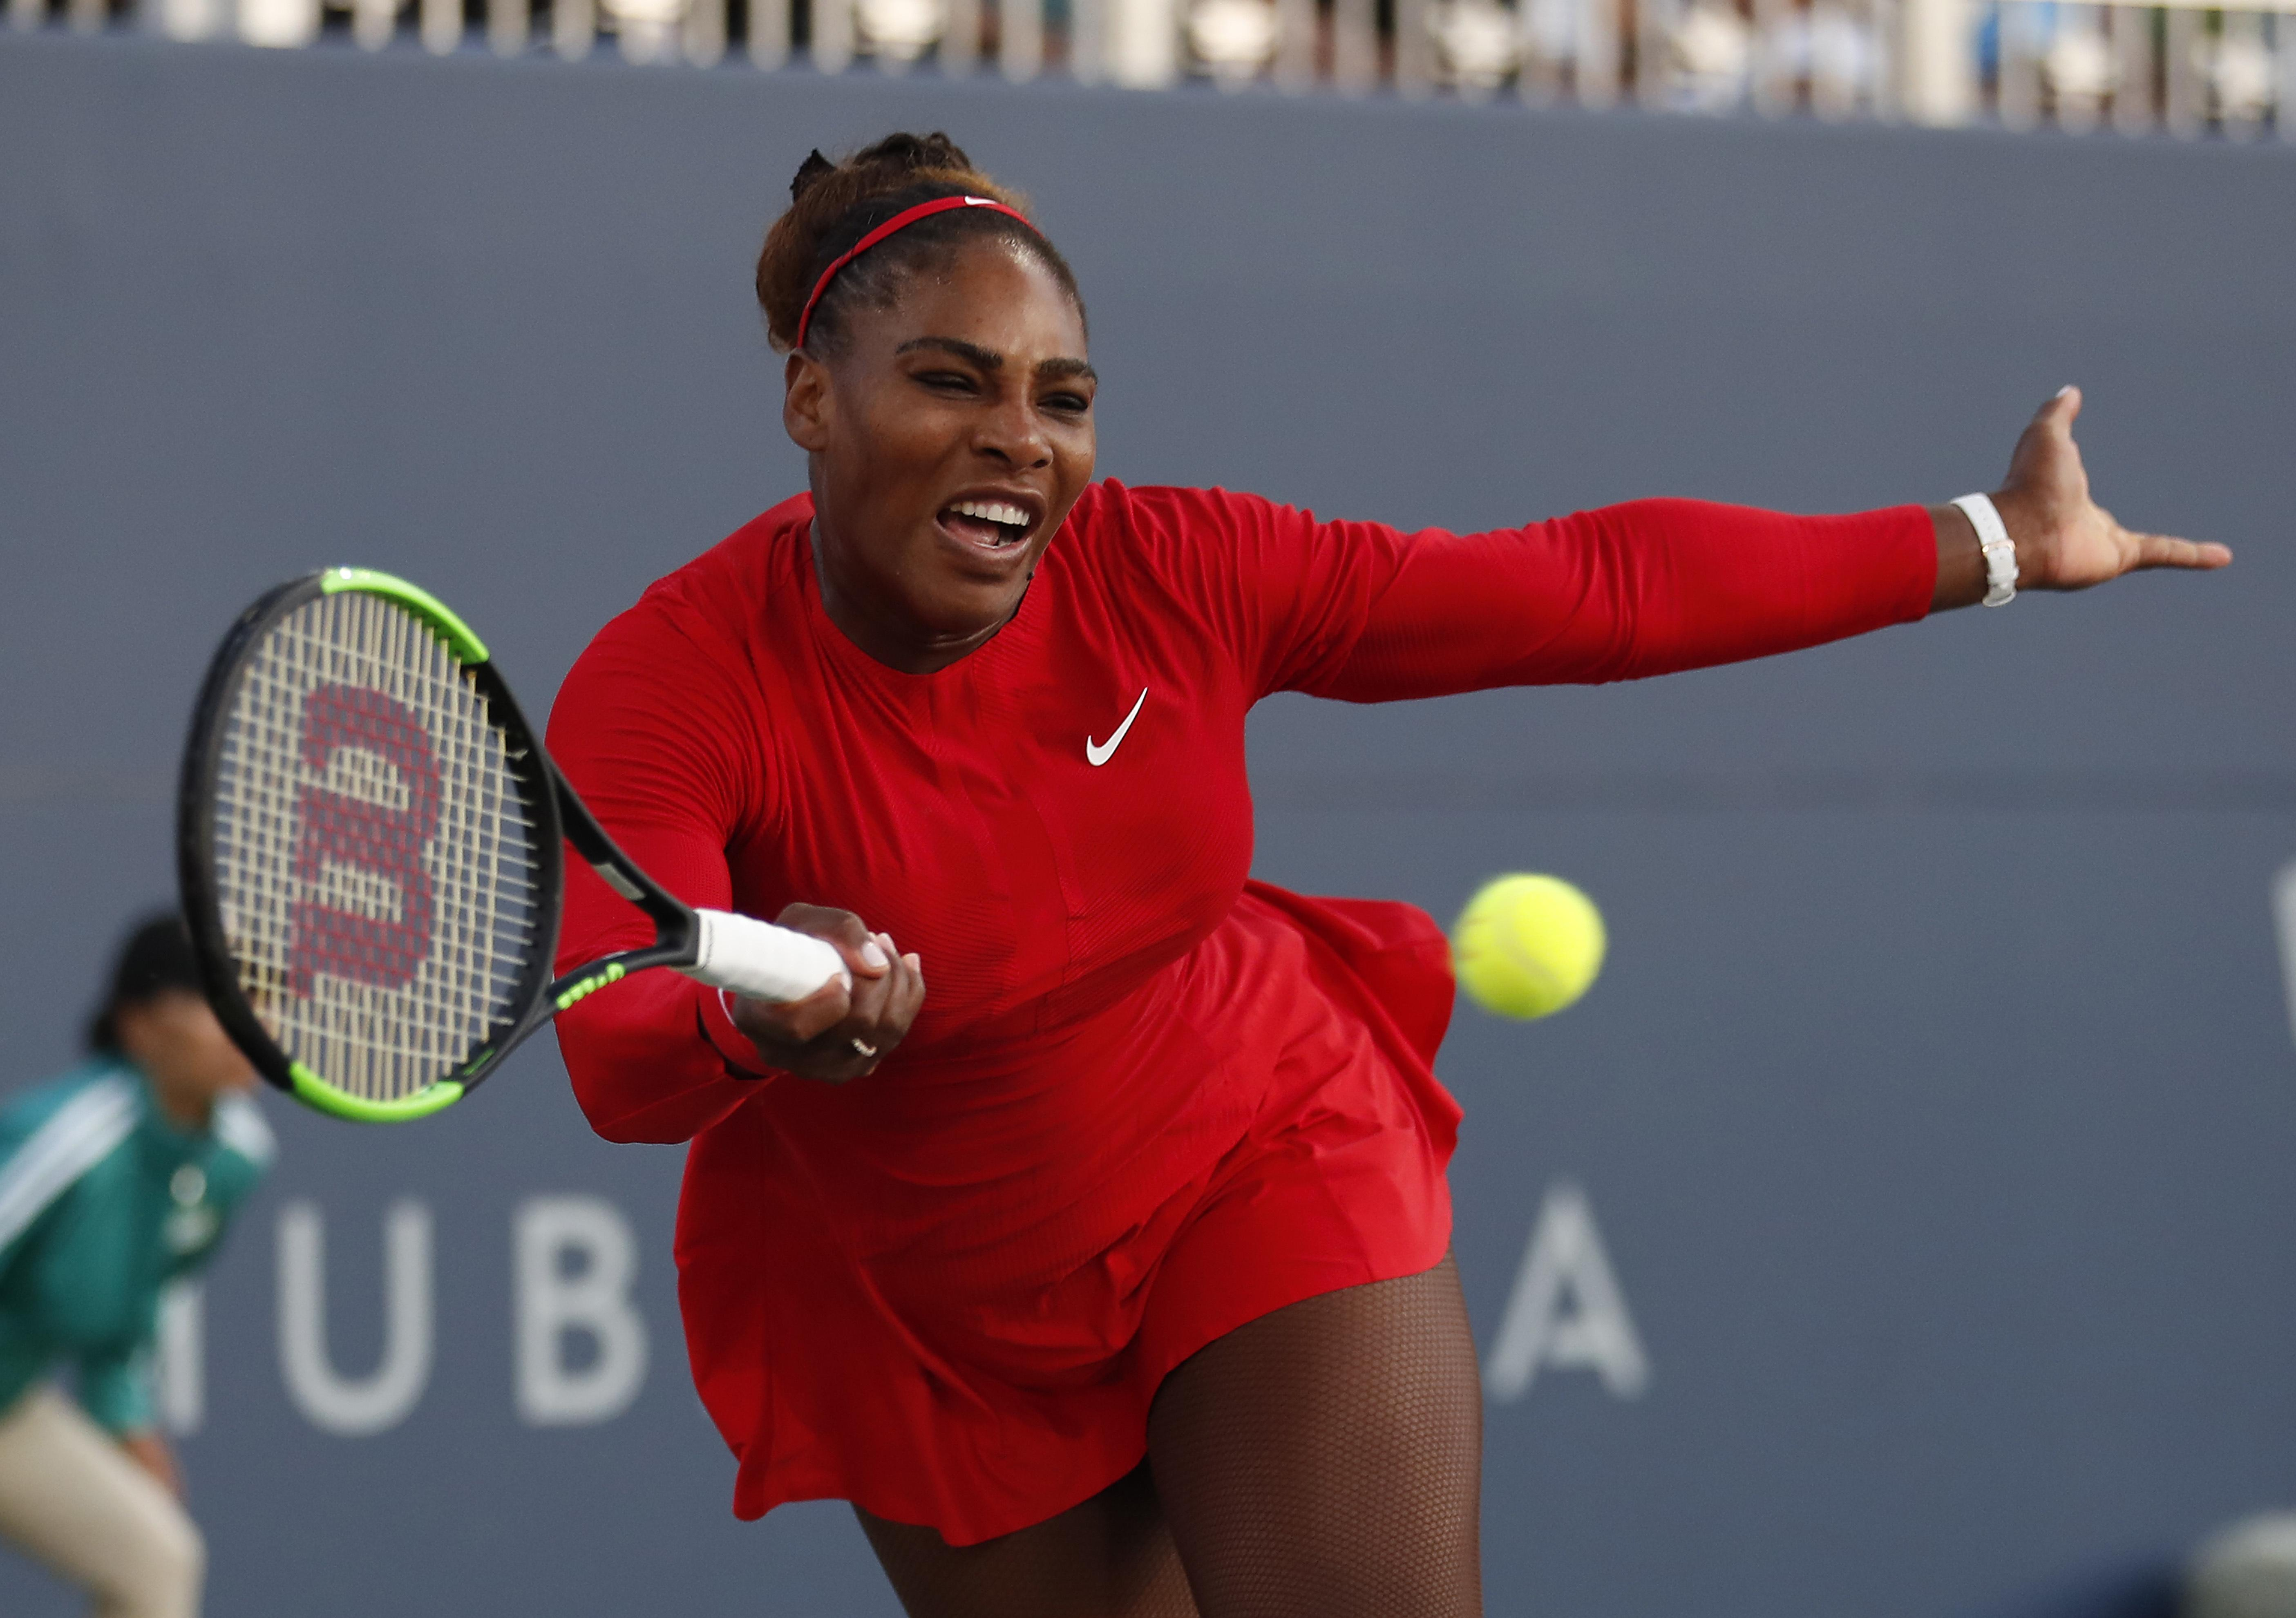 Williams struggled in the first-round defeat